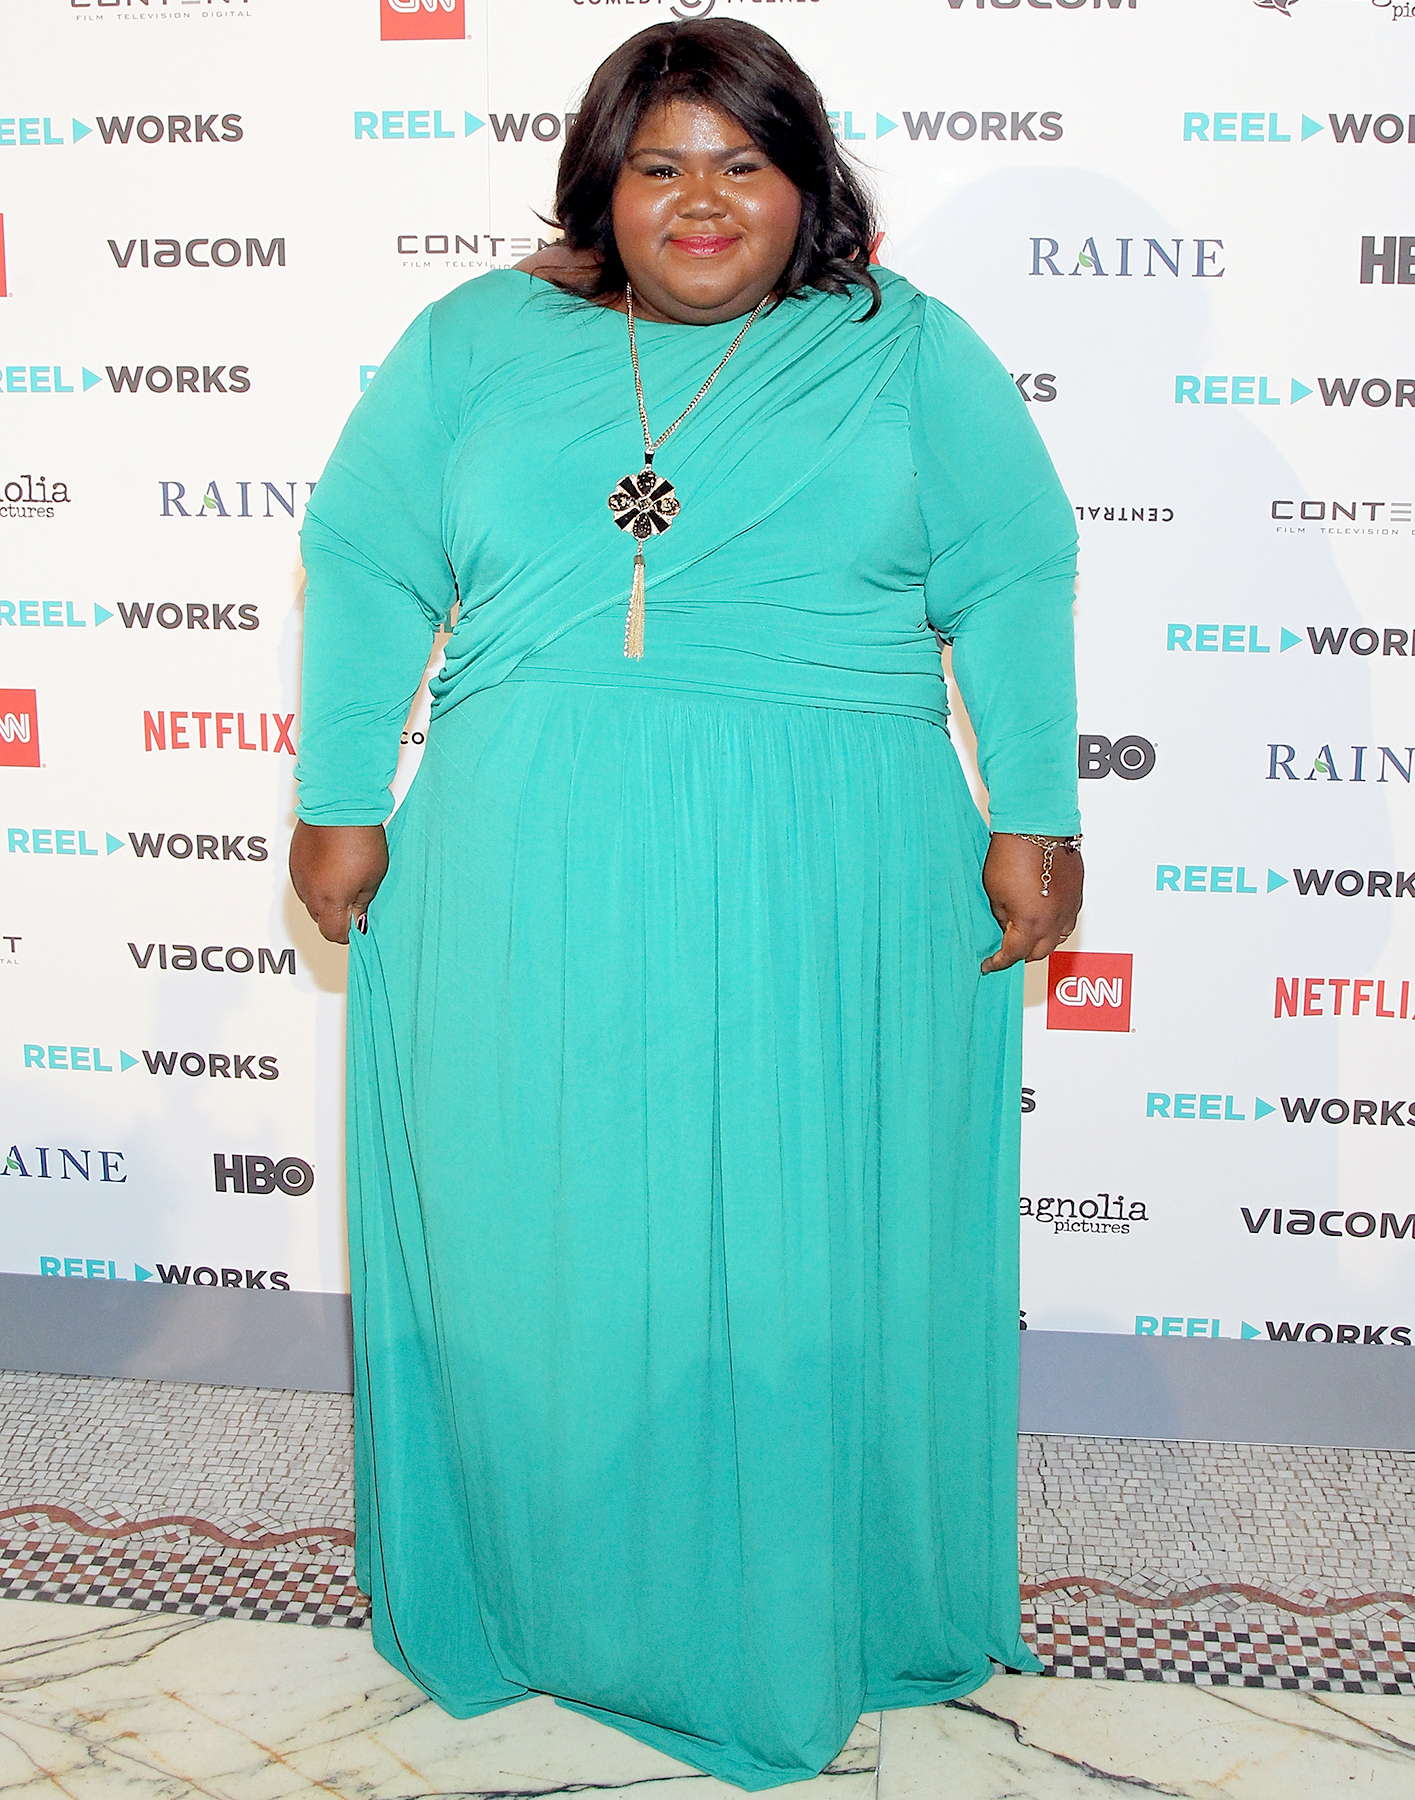 Gabourey Sidibe attends the Reel Works Gala Benefit 2015 At Capitale on November 11, 2015 in New York City.